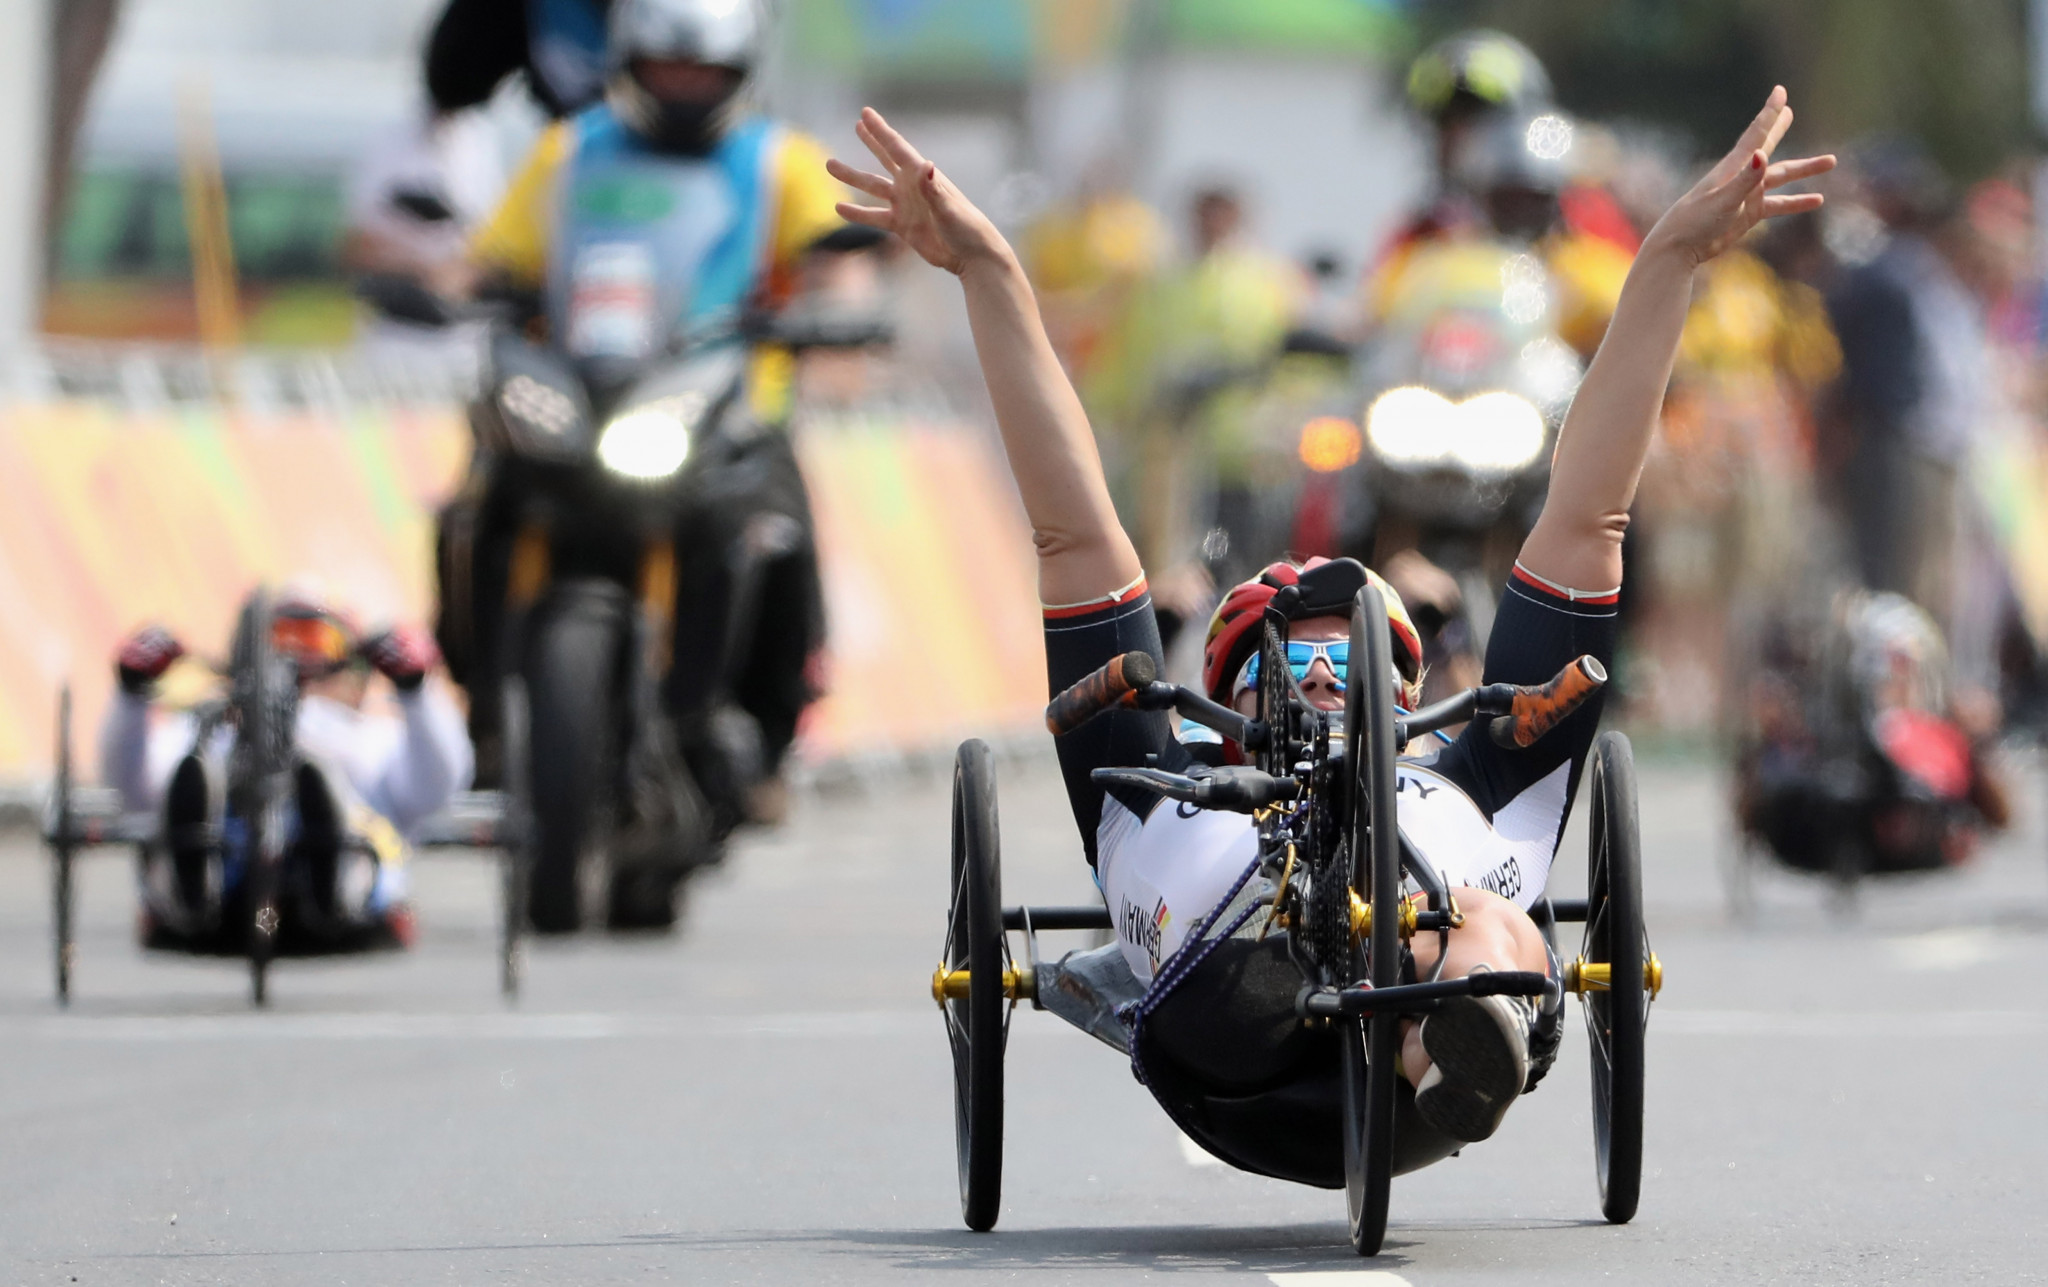 Christiane Reppe of Germany had won cycling gold at the Rio 2016 Olympics before switching to the Para triathlon ©Getty Images